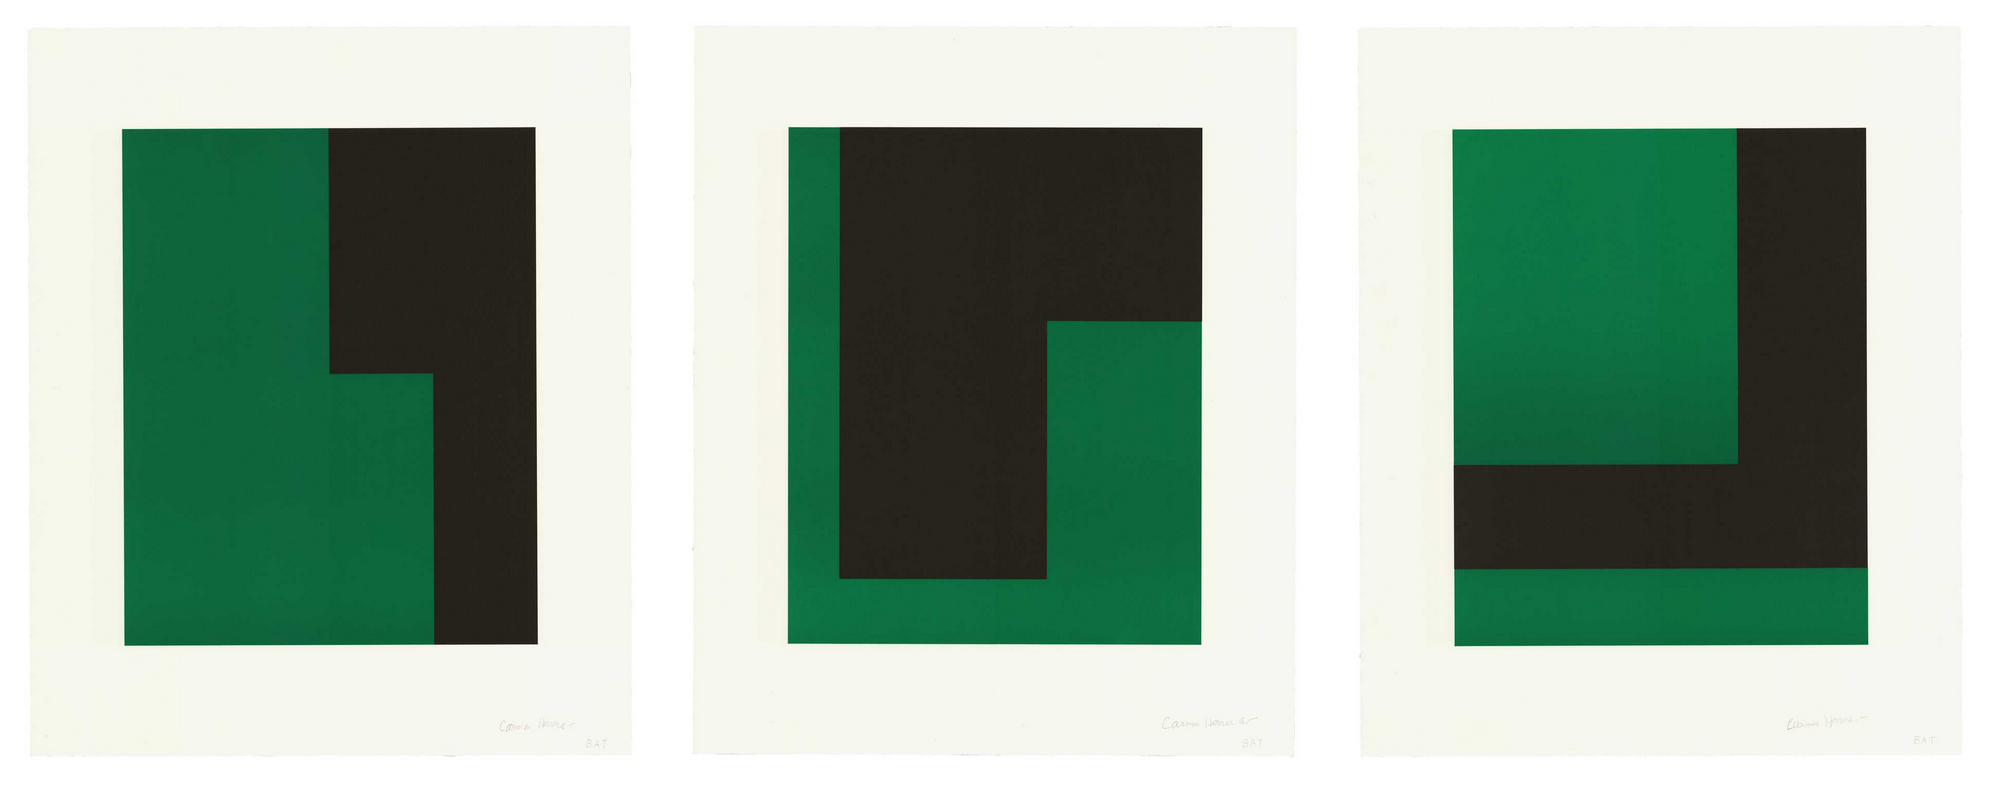 Carmen Herrera <br> <i>Verde y Negro, 2017</i> <br>  Portfolio of three lithographs <br>  21 1/4 x 17 1/2 inches, each <br>  Ed. 20 <br>